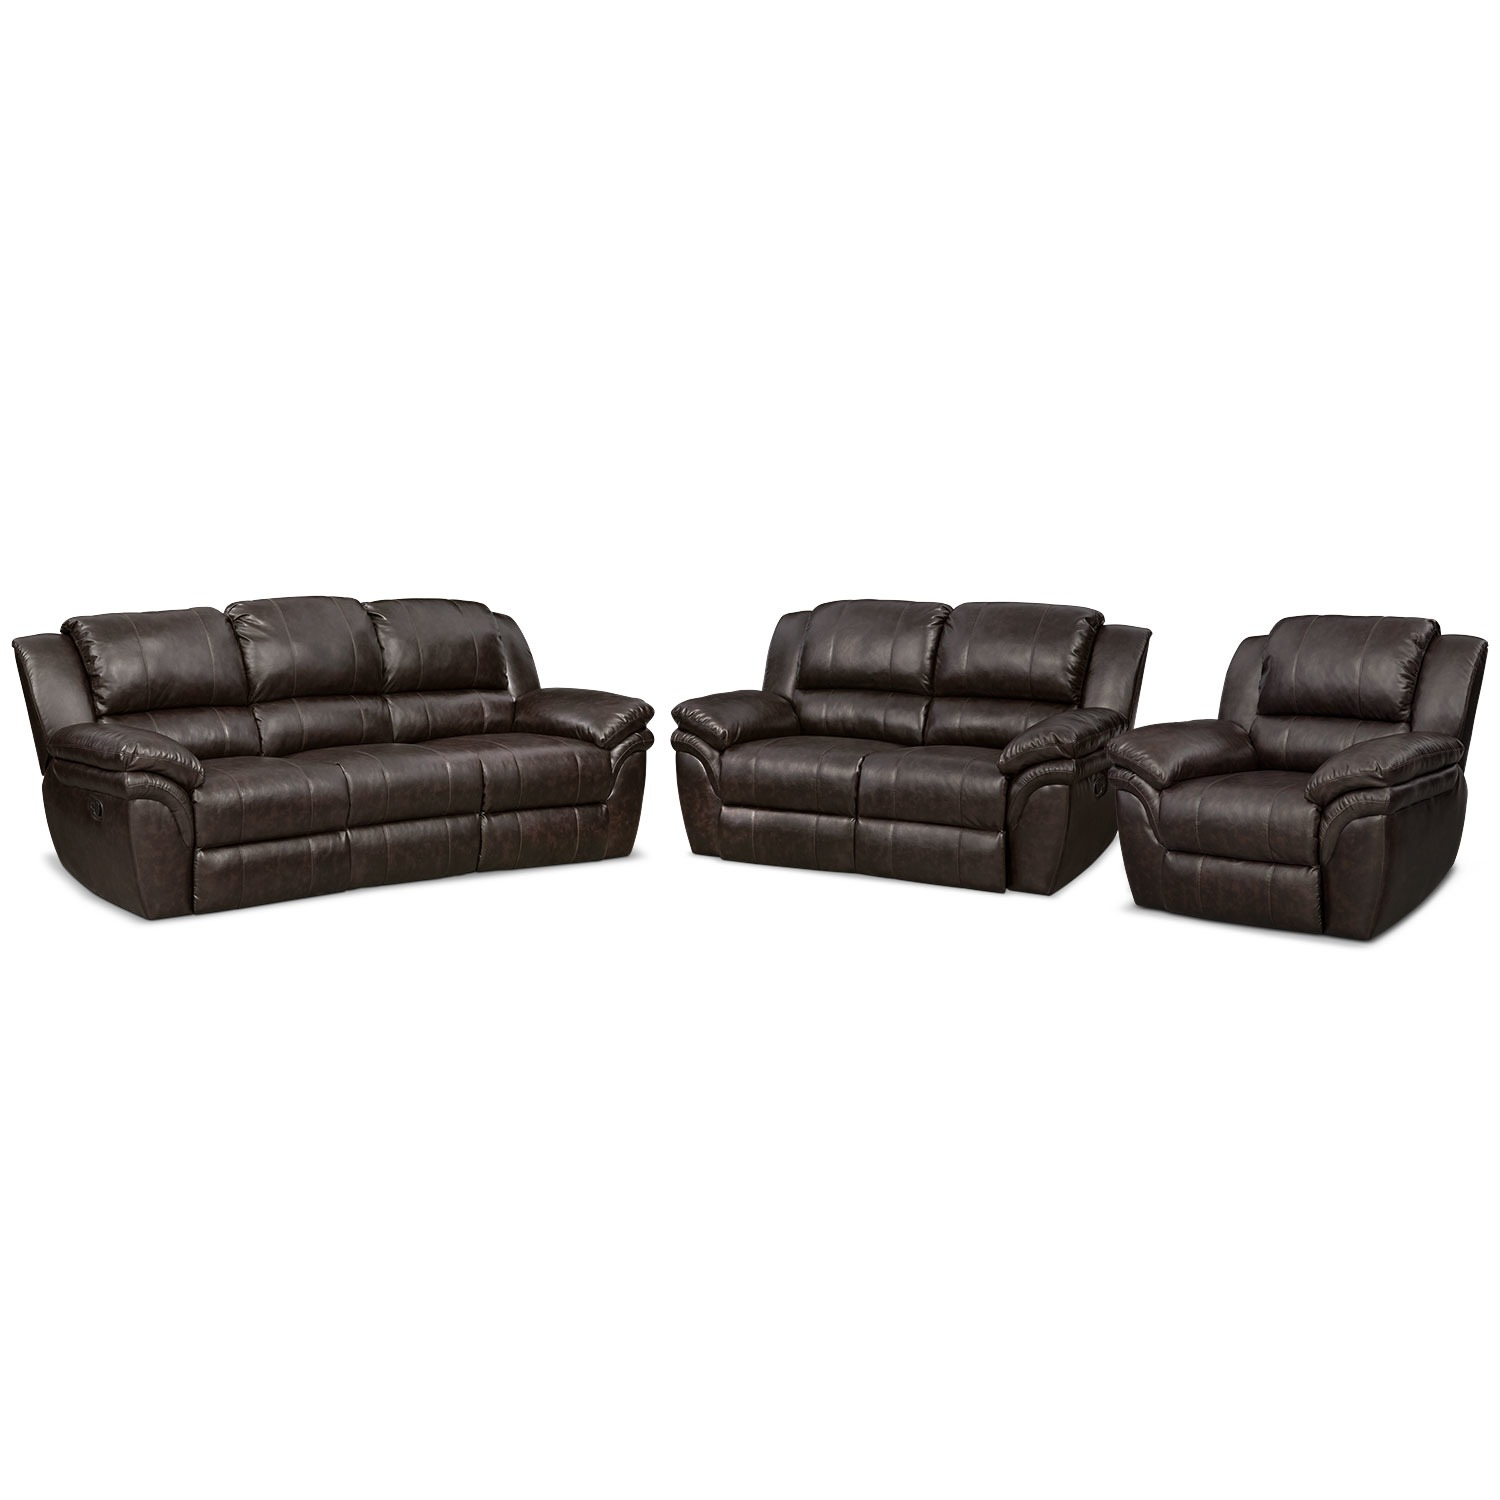 Aldo Manual Reclining Sofa, Loveseat and Recliner Set | Value City